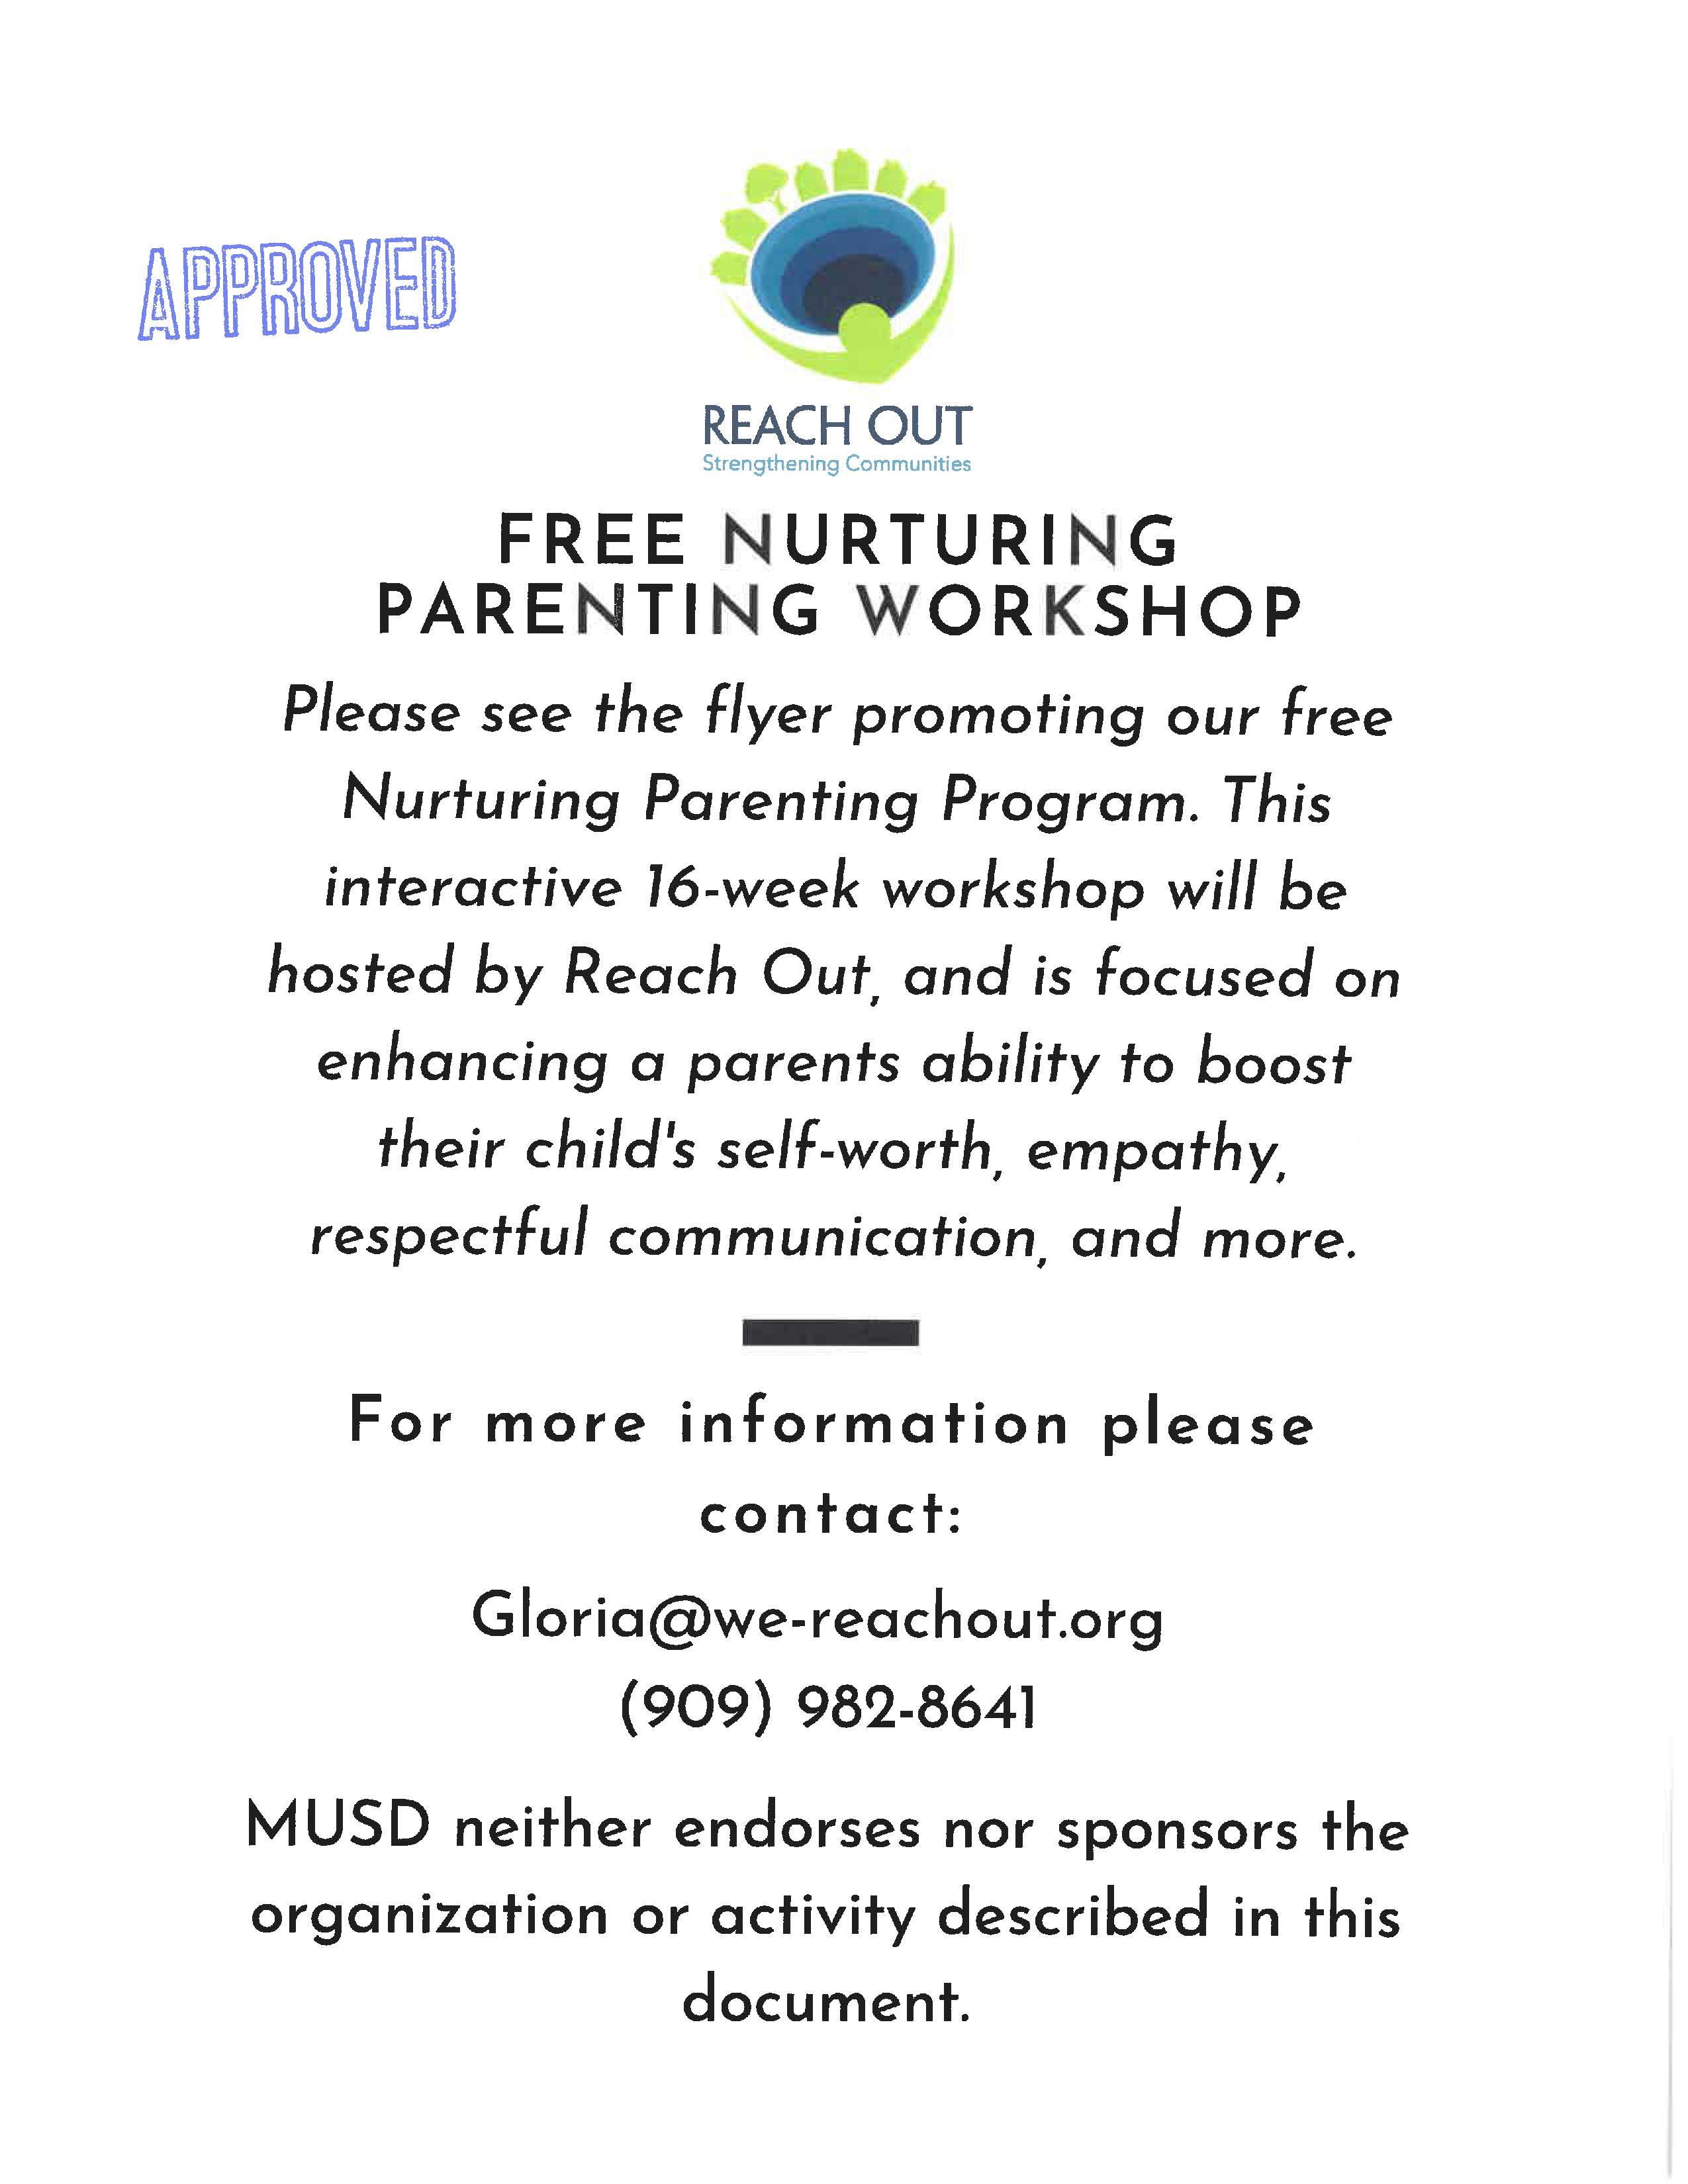 Free Nurturing Parenting Workshop pg. 2, click for .pdf